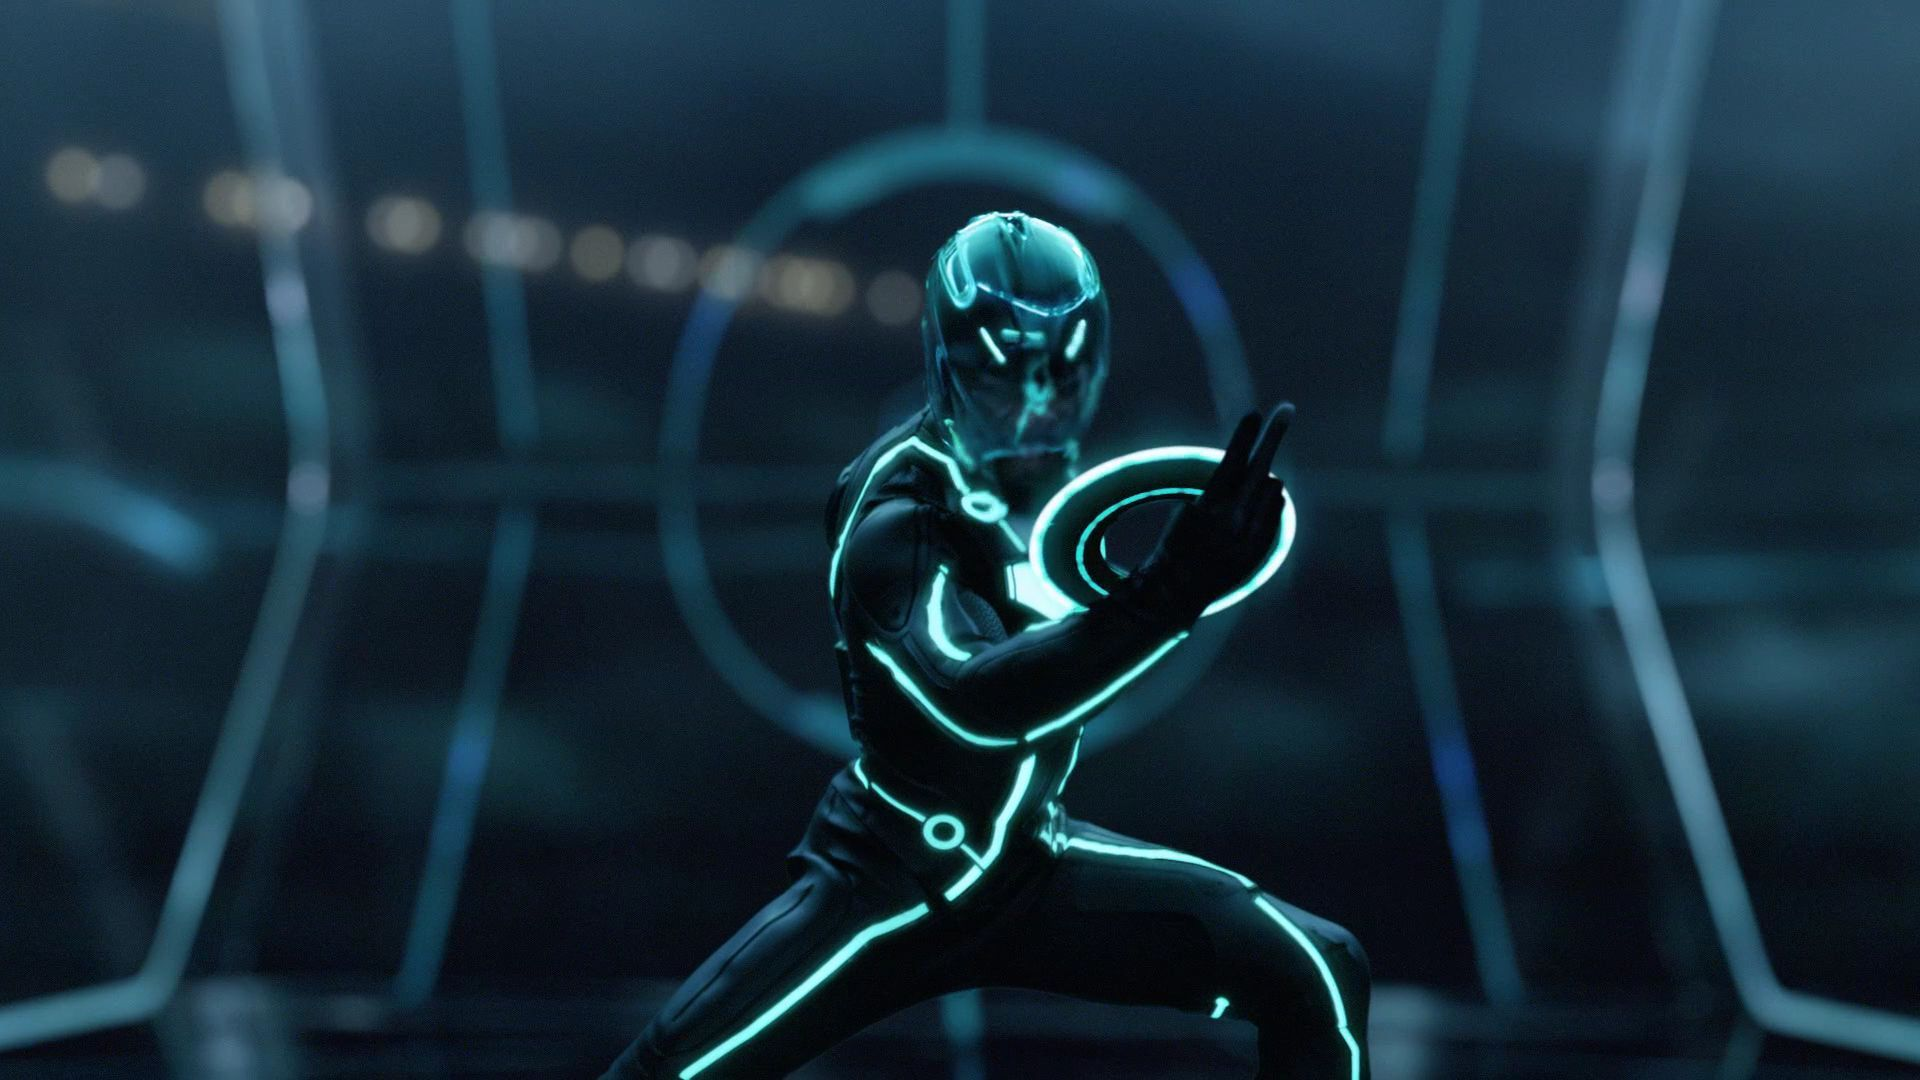 tron legacy images tron legacy hd wallpaper and background photos